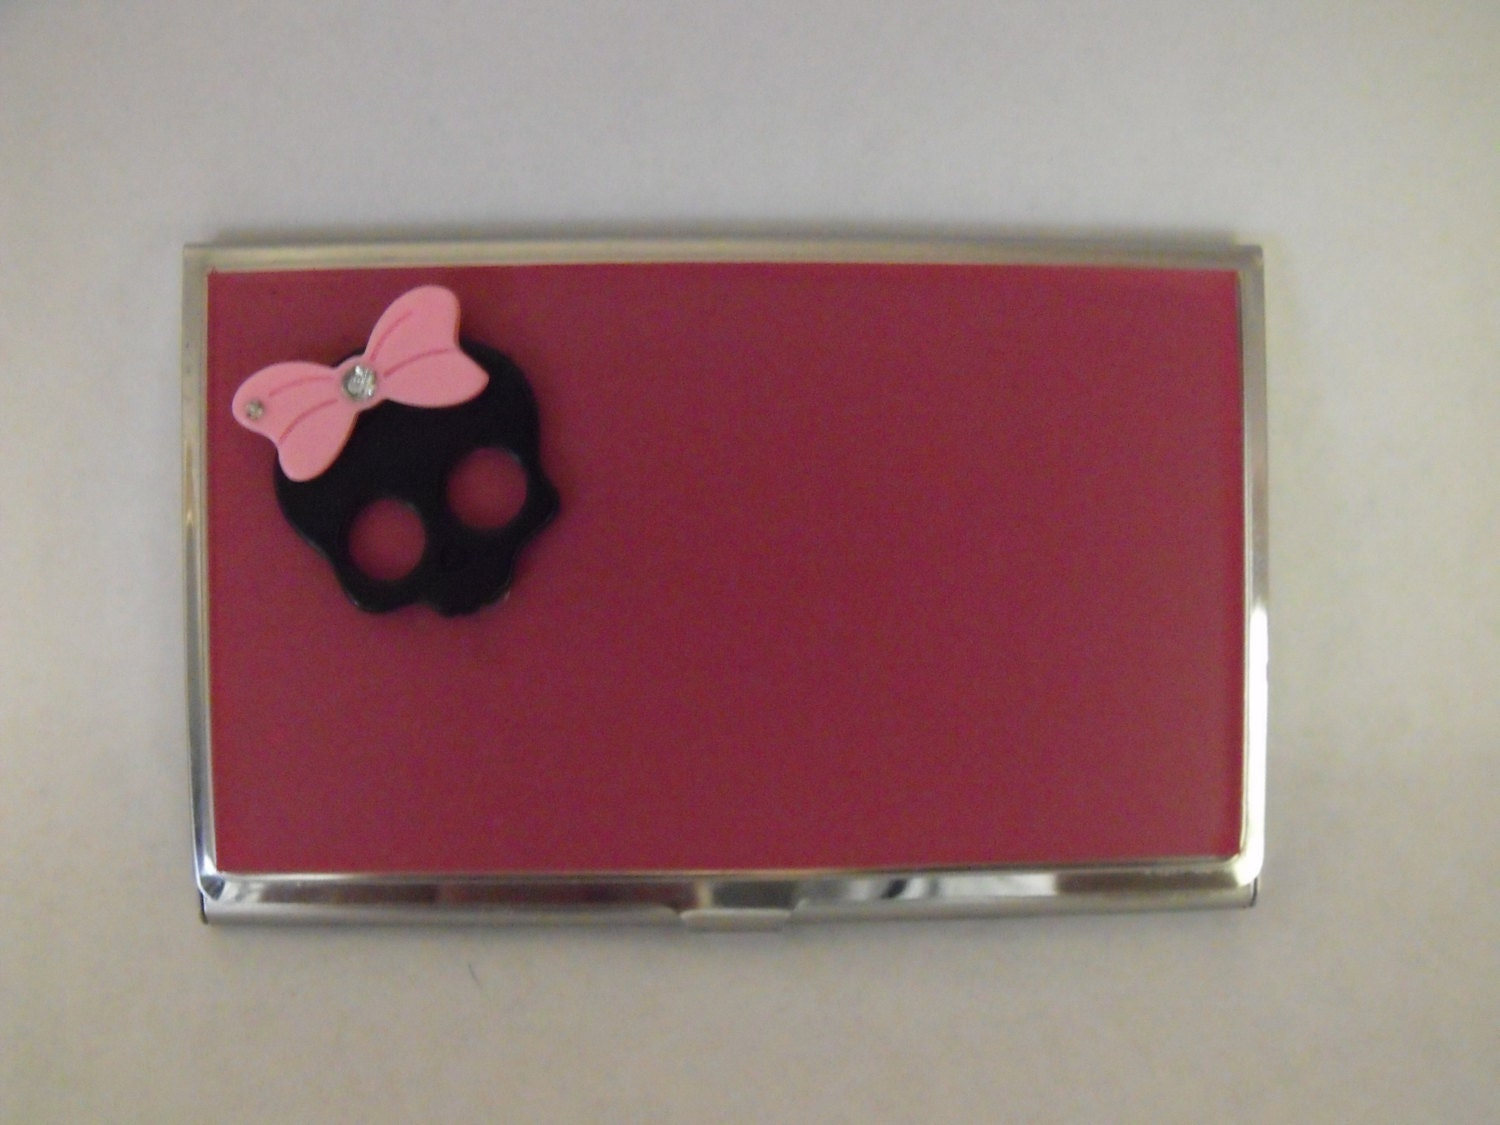 Credit card holder business card holder girly goth black resin credit card holder business card holder girly goth black resin skull pink background womens colourmoves